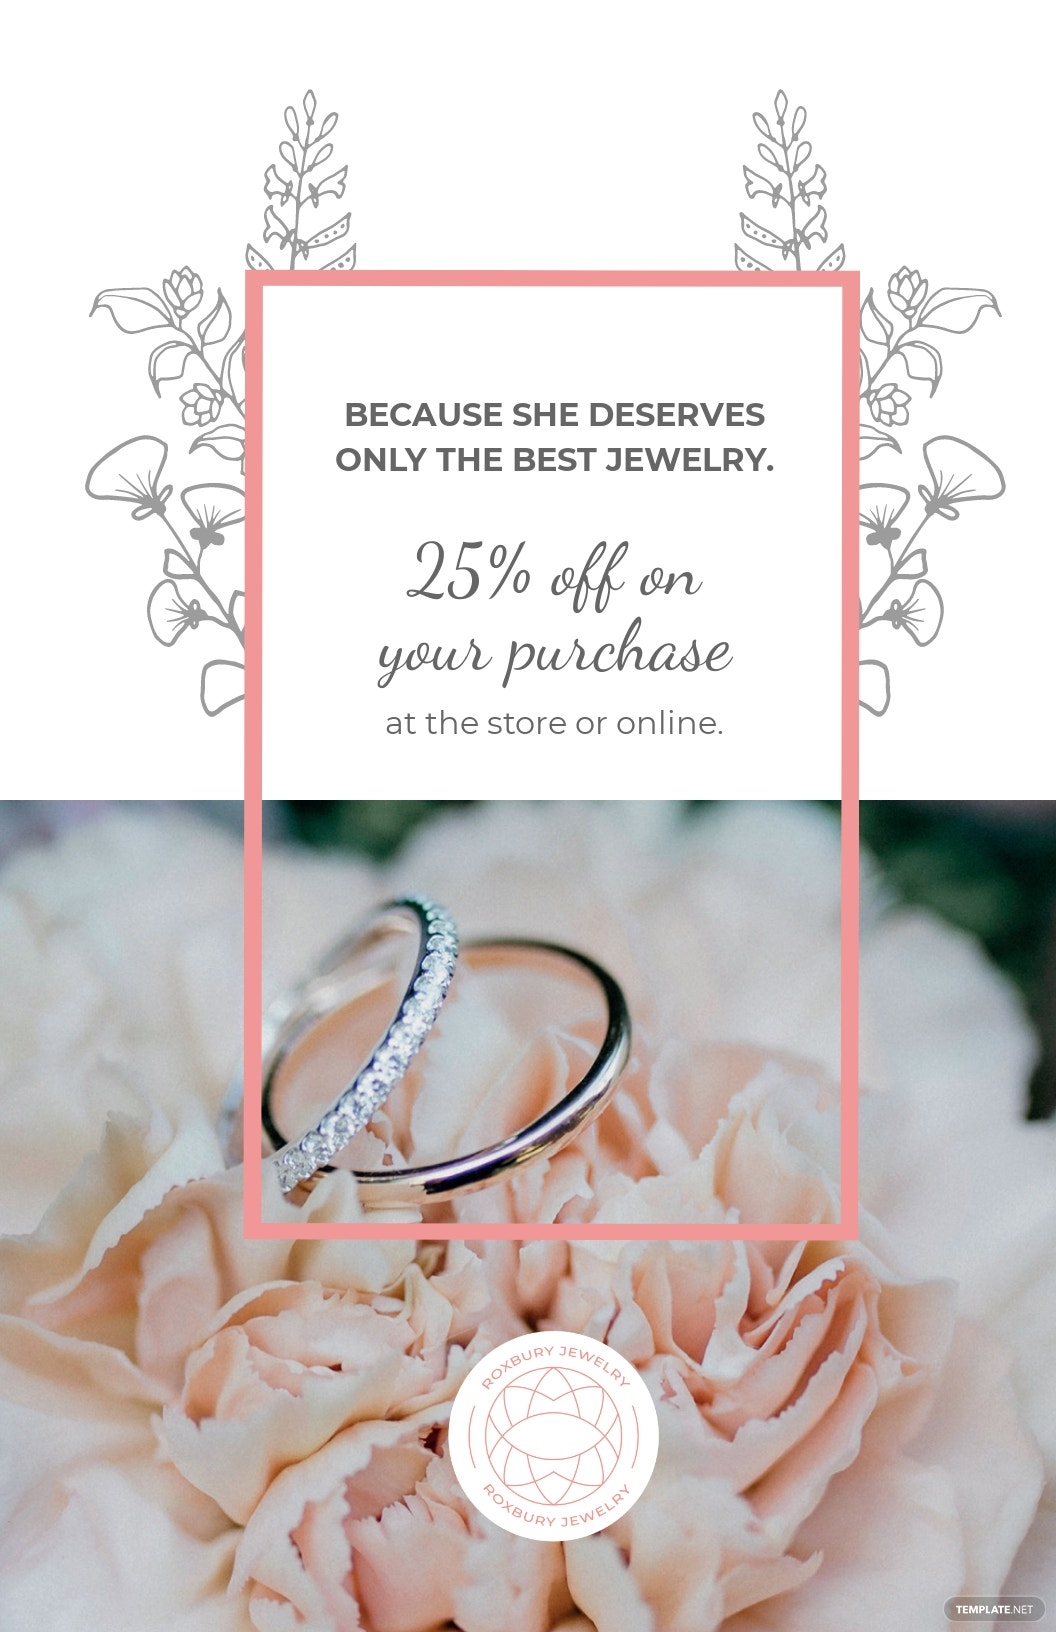 Free Jewelry Store Discount Poster Template.jpe